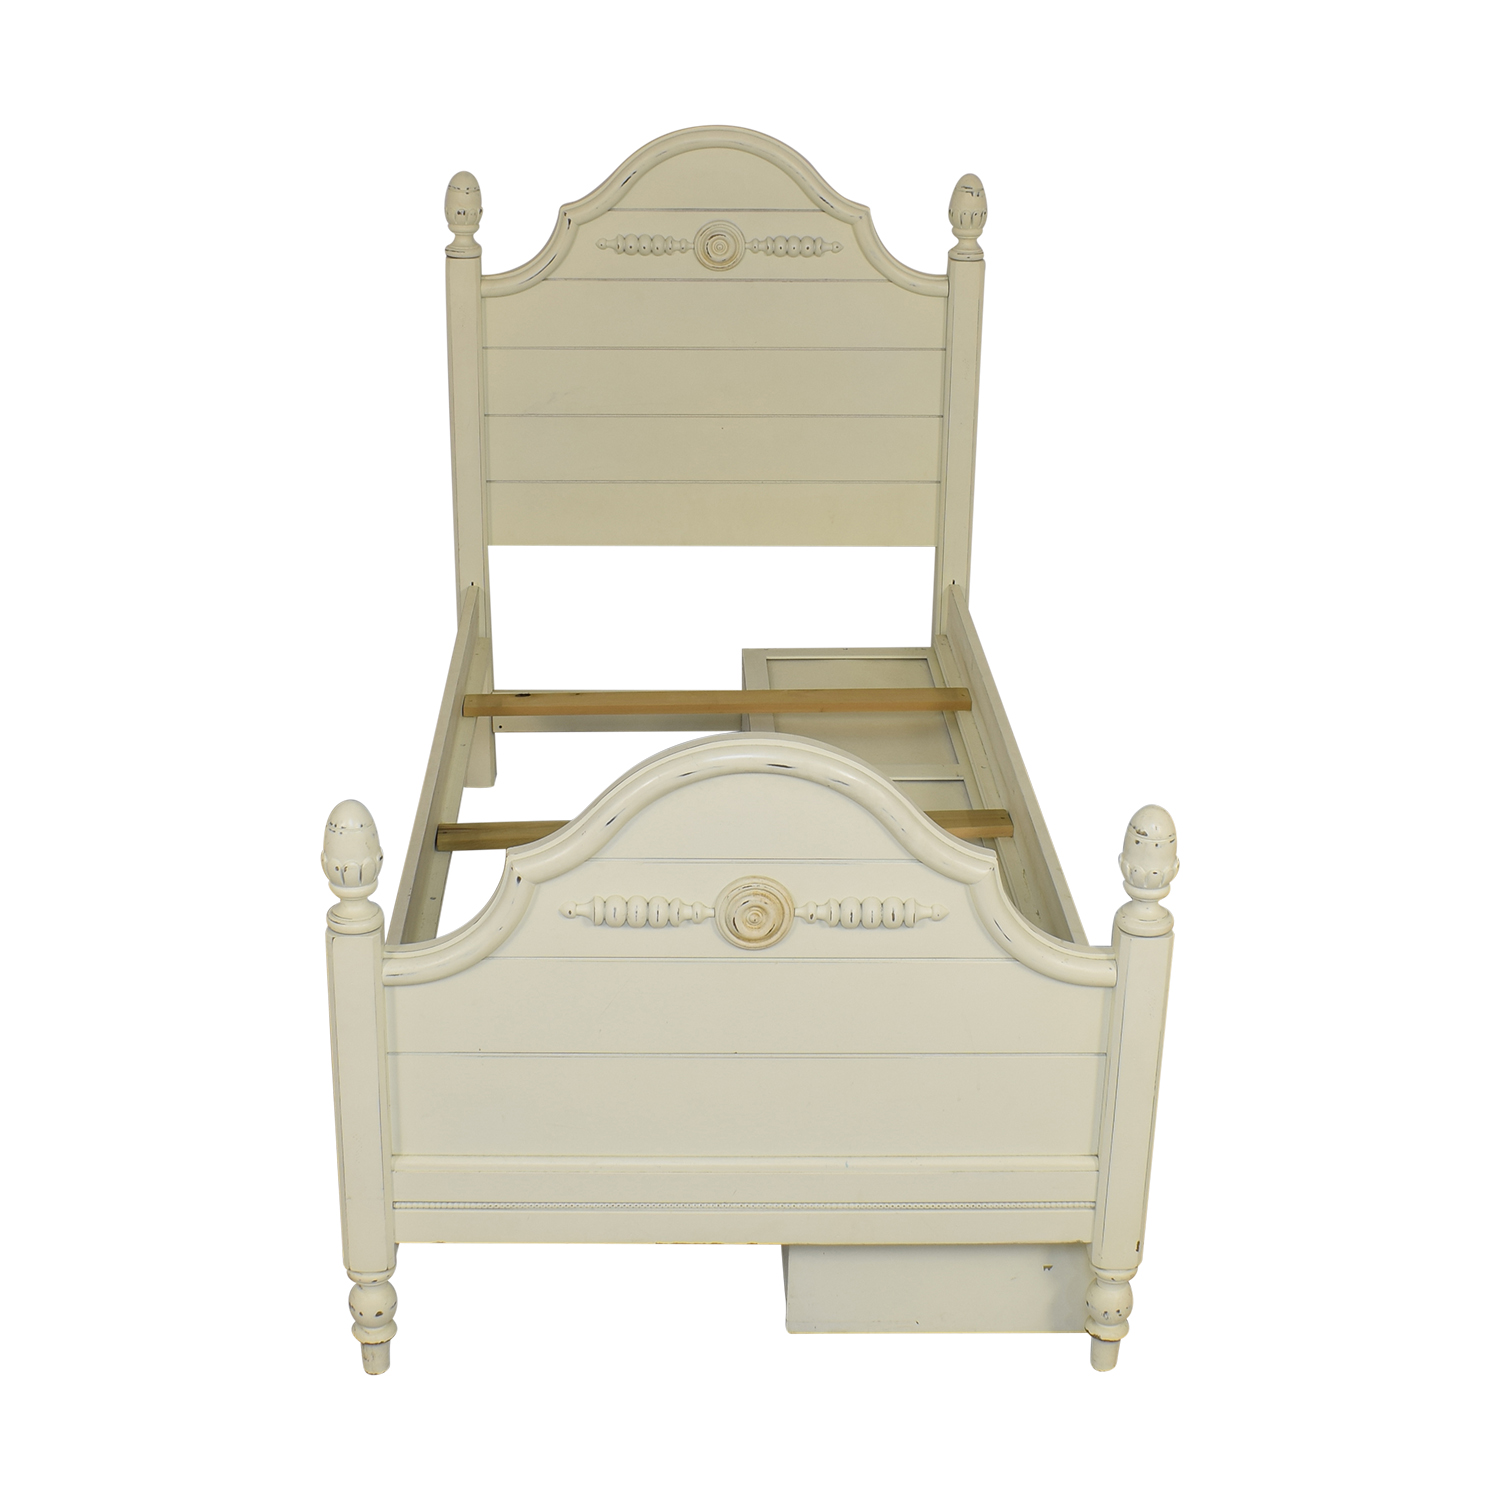 Lexington Furniture Lexington Furniture Distressed Twin Bed with Storage Beds